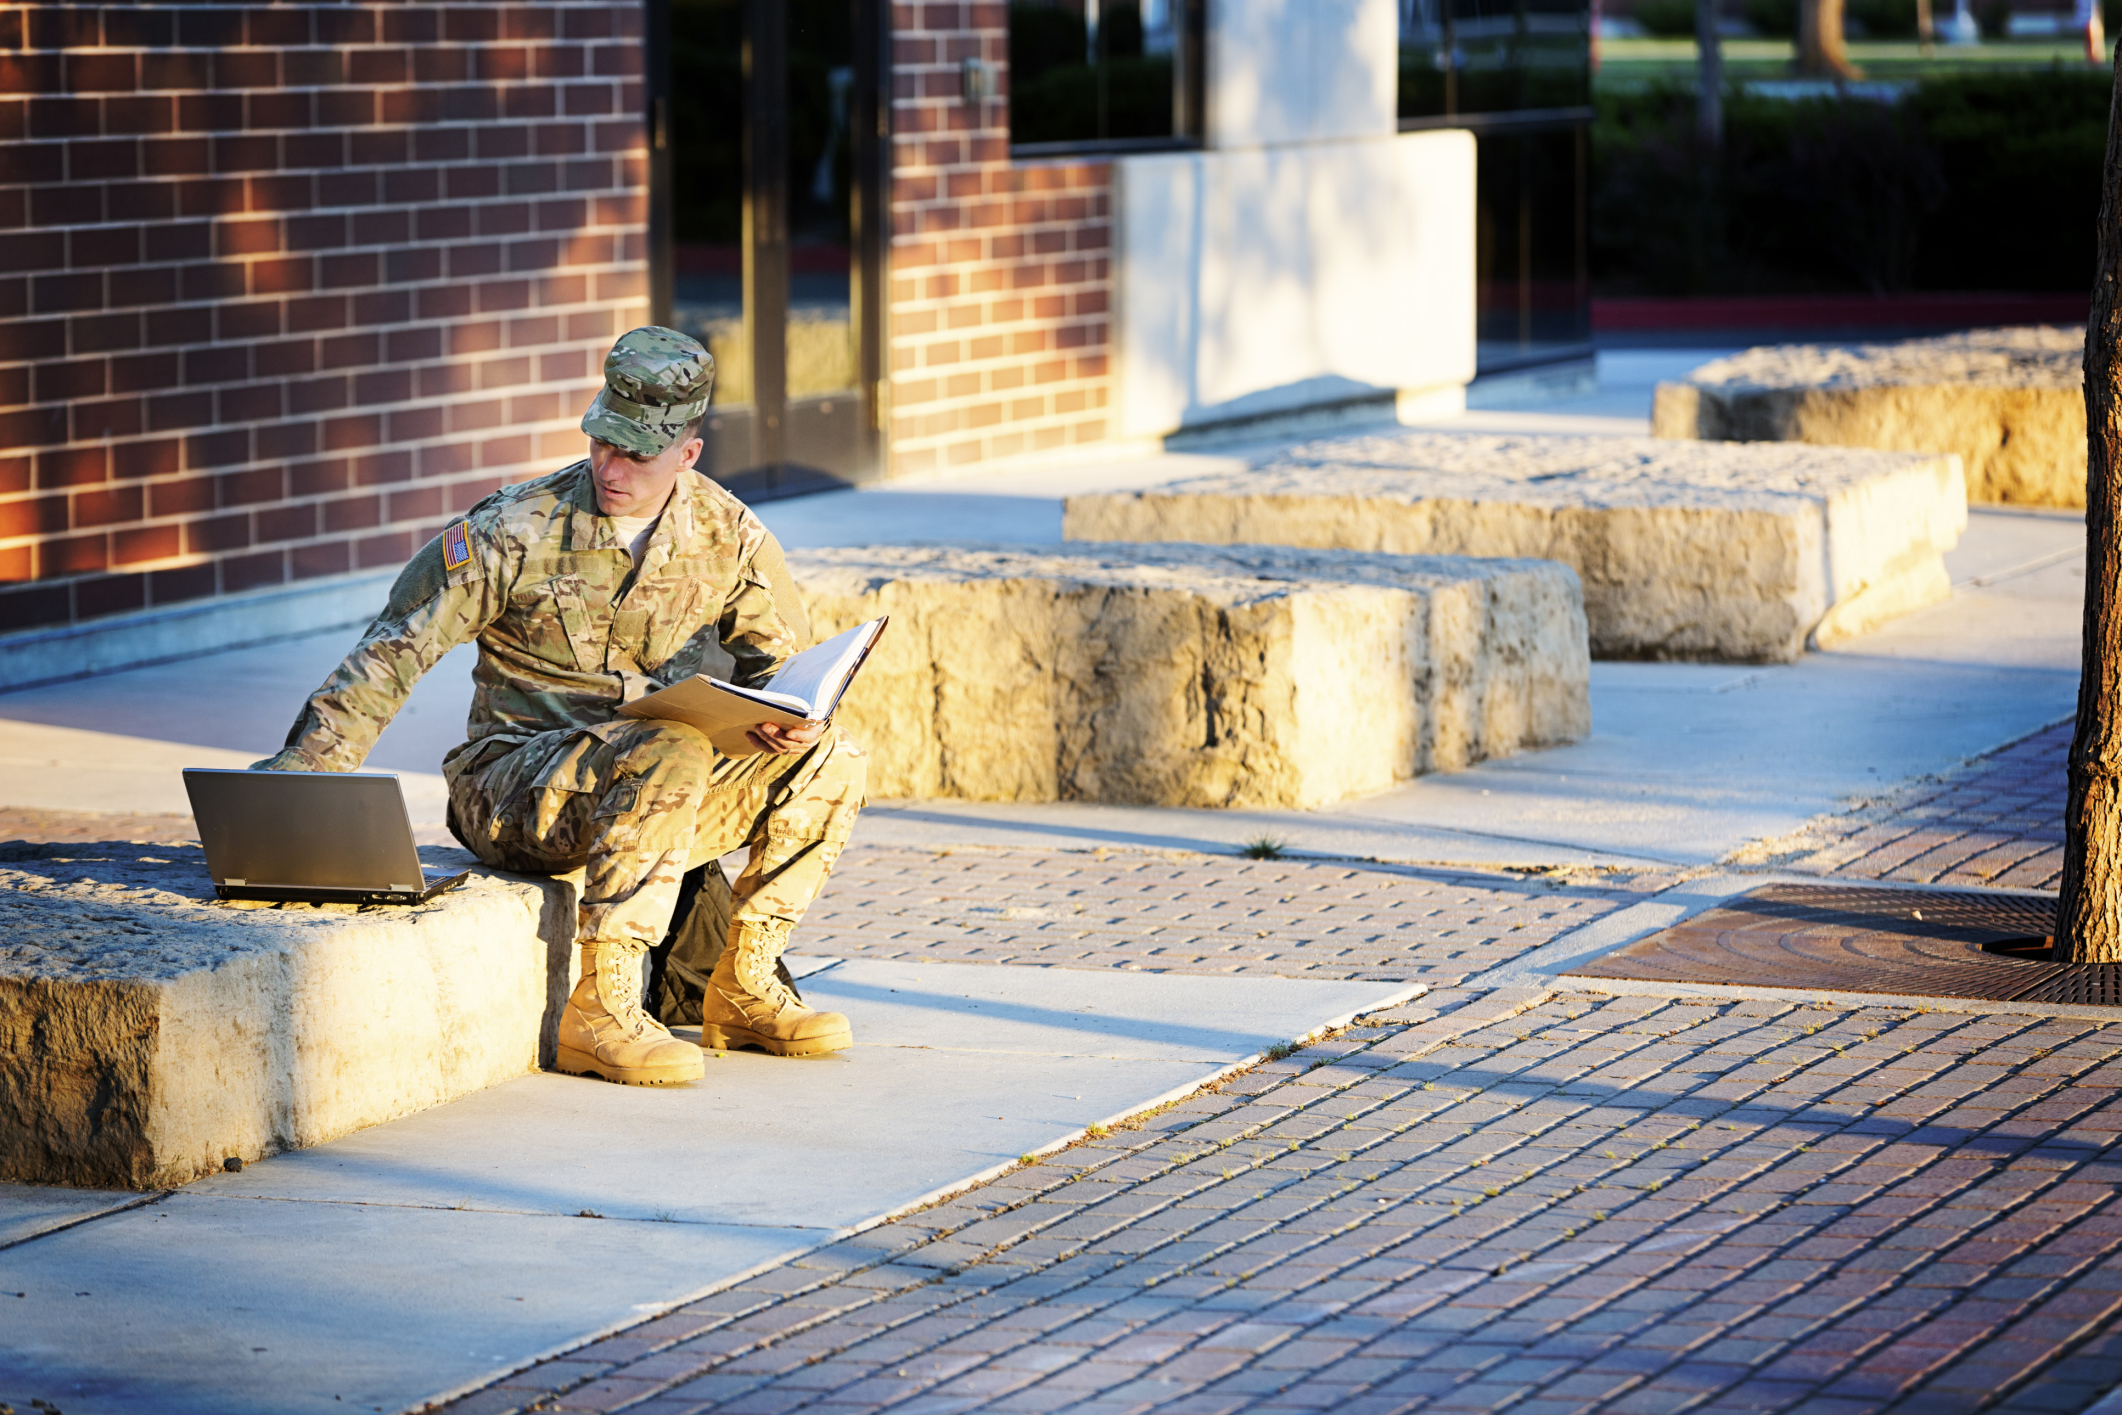 Maximize Your GI Bill Benefits   Get the best education your money can buy with our powerful college decision tools.